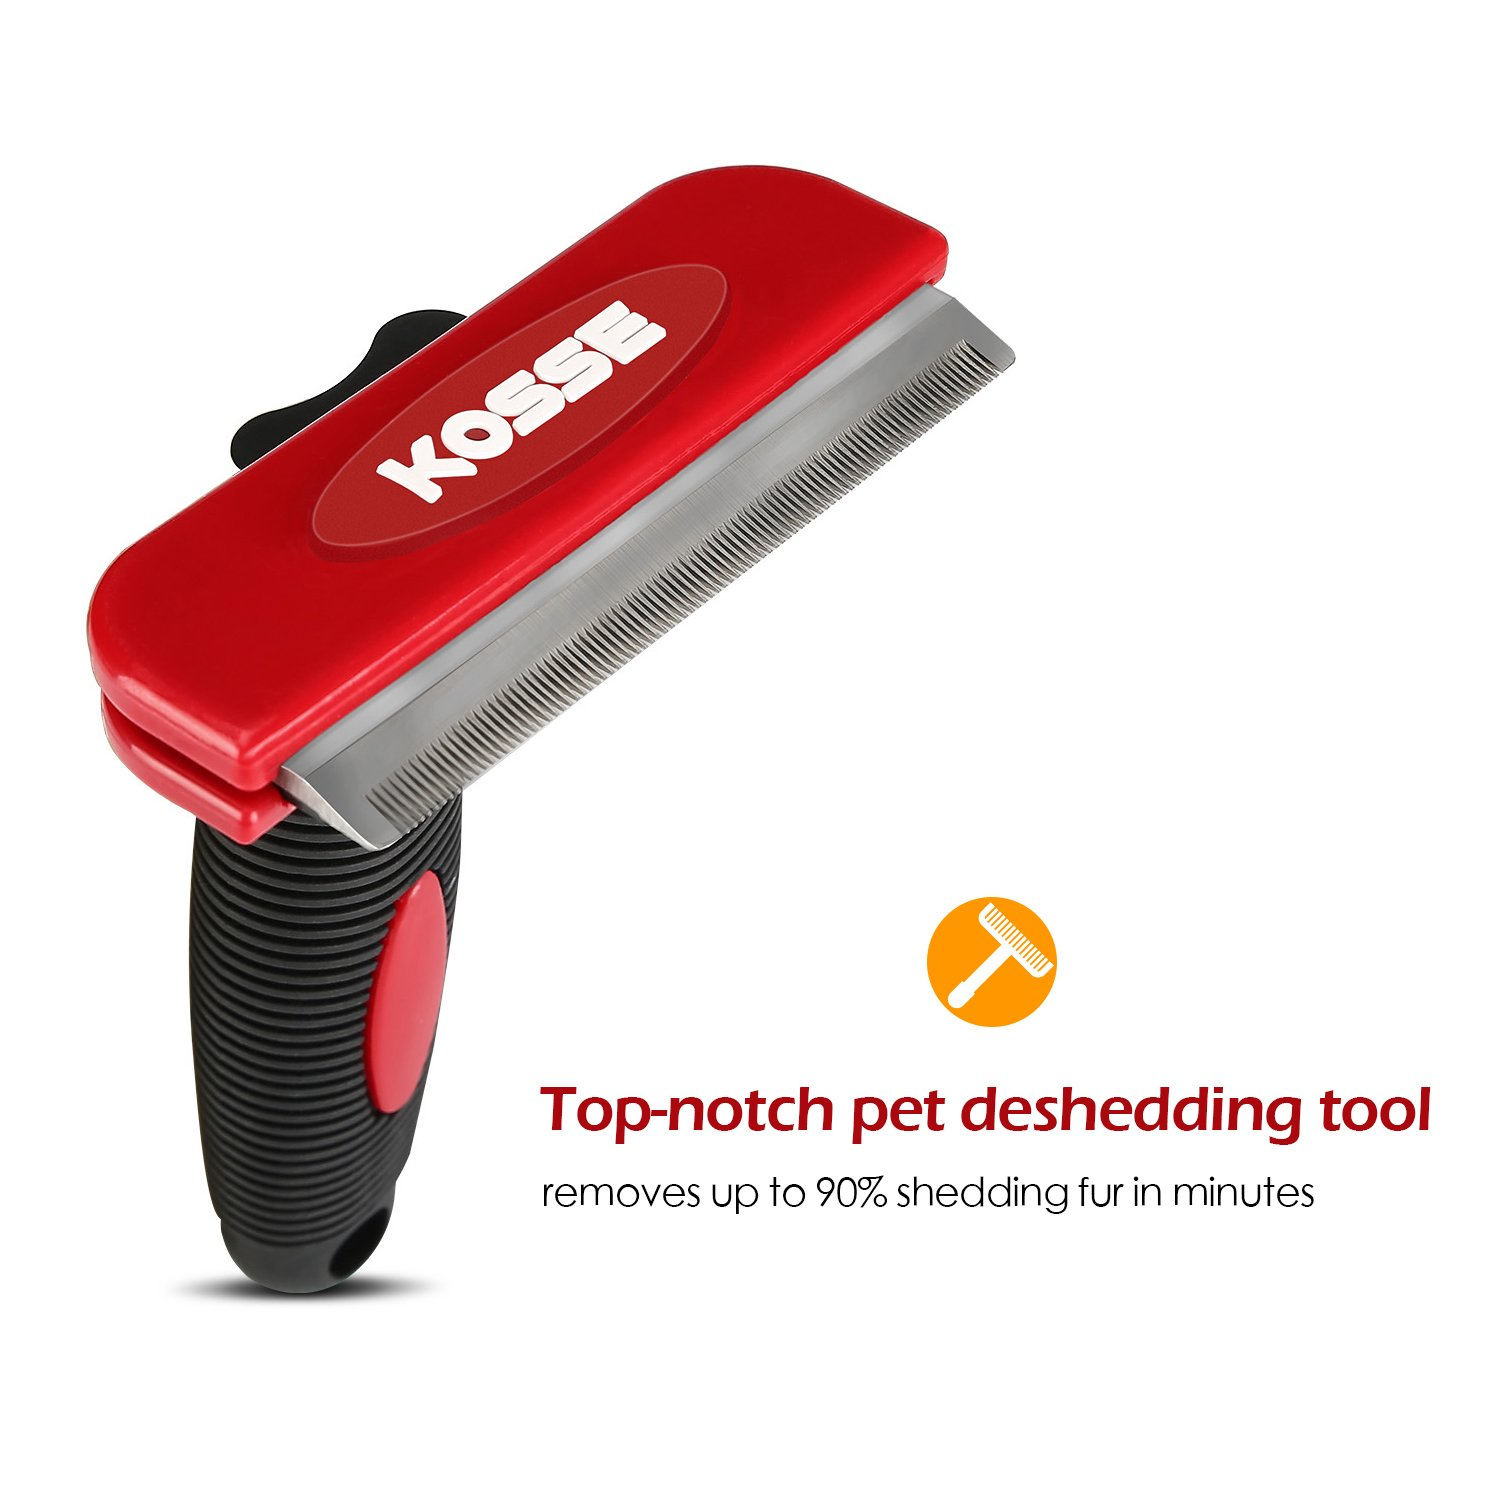 Professional Pet Deshedding Tool with Fur Ejector, Kosse Grooming Brush Effectively Reduces Shedding by up to 90%, Grooming Comb for Cats and Dogs (Medium) by Kosse (Image #2)